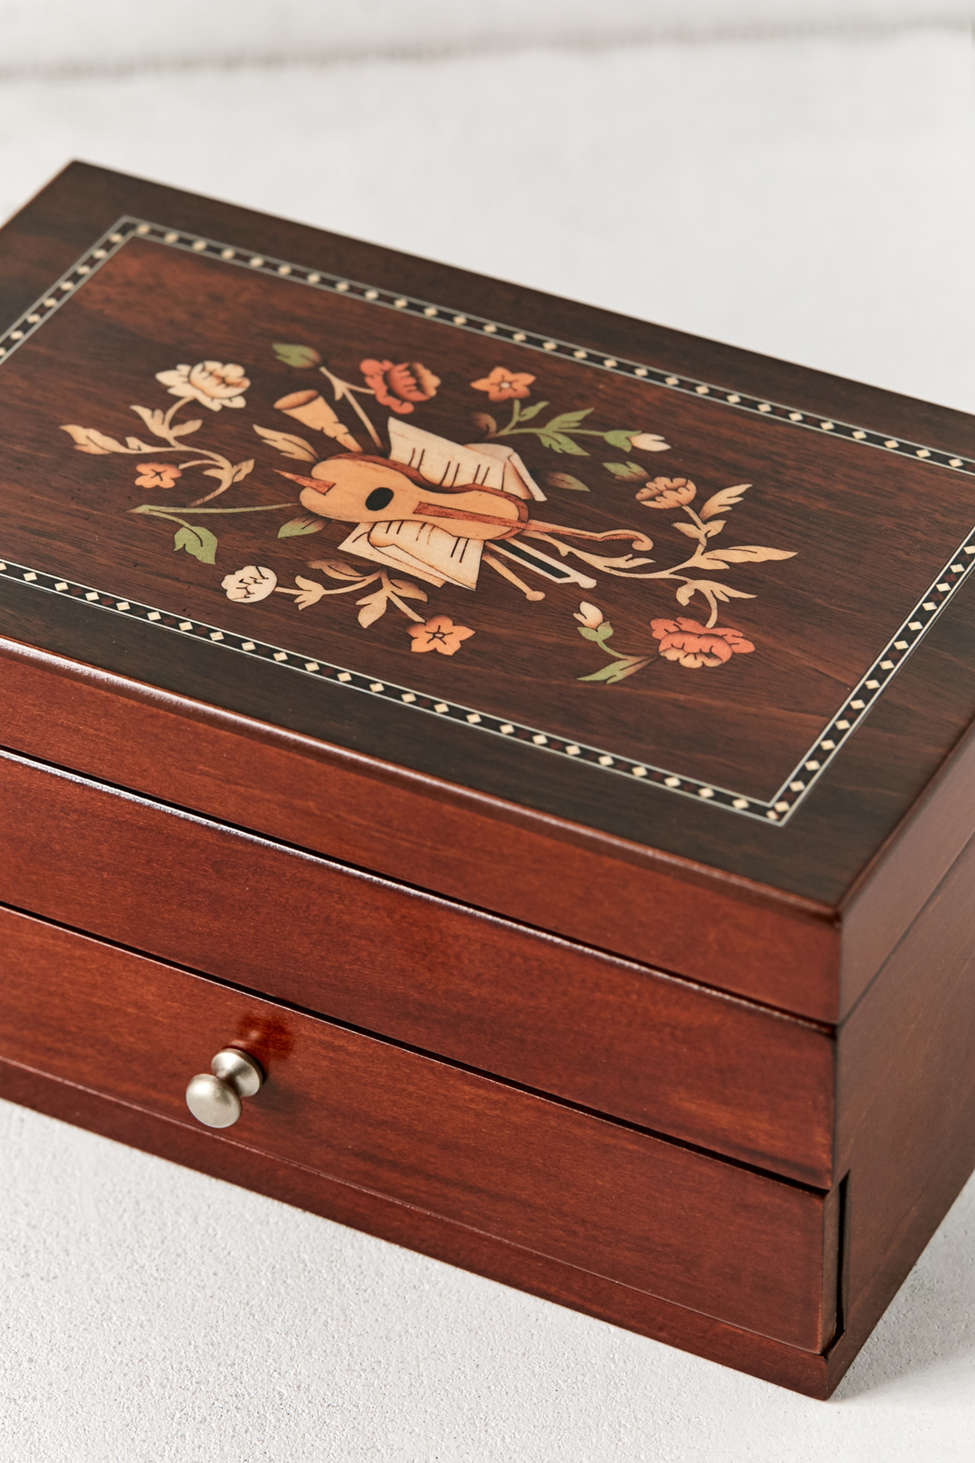 Slide View: 5: Mele & Co. Brynn Florentine Motif Wooden Jewelry Box